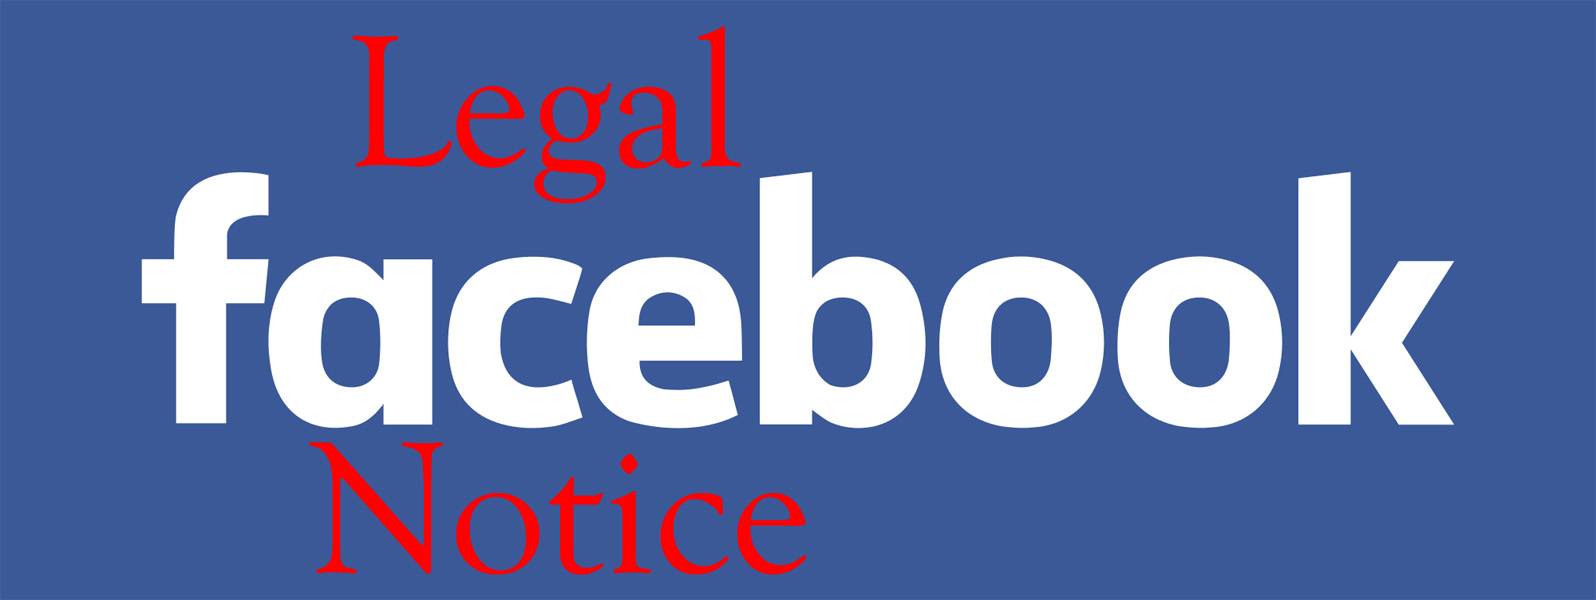 "Lawyer Destroys ""Facebook Legal Notice"" Meme"